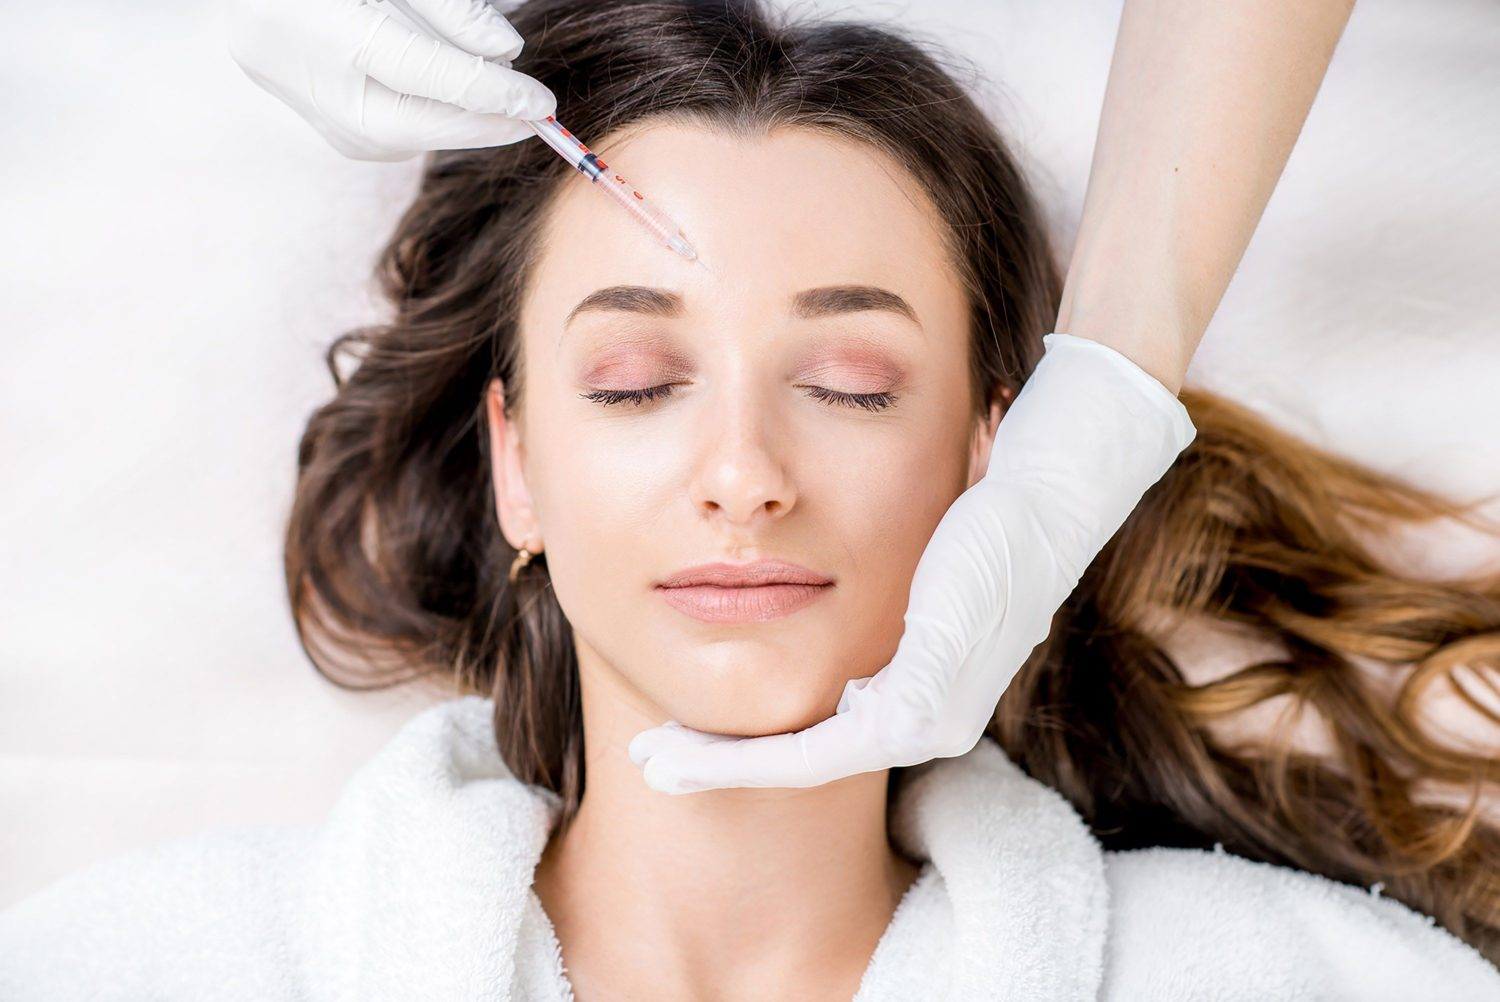 Traits Of A Good Chicago Plastic Surgeon – What Should You Look For